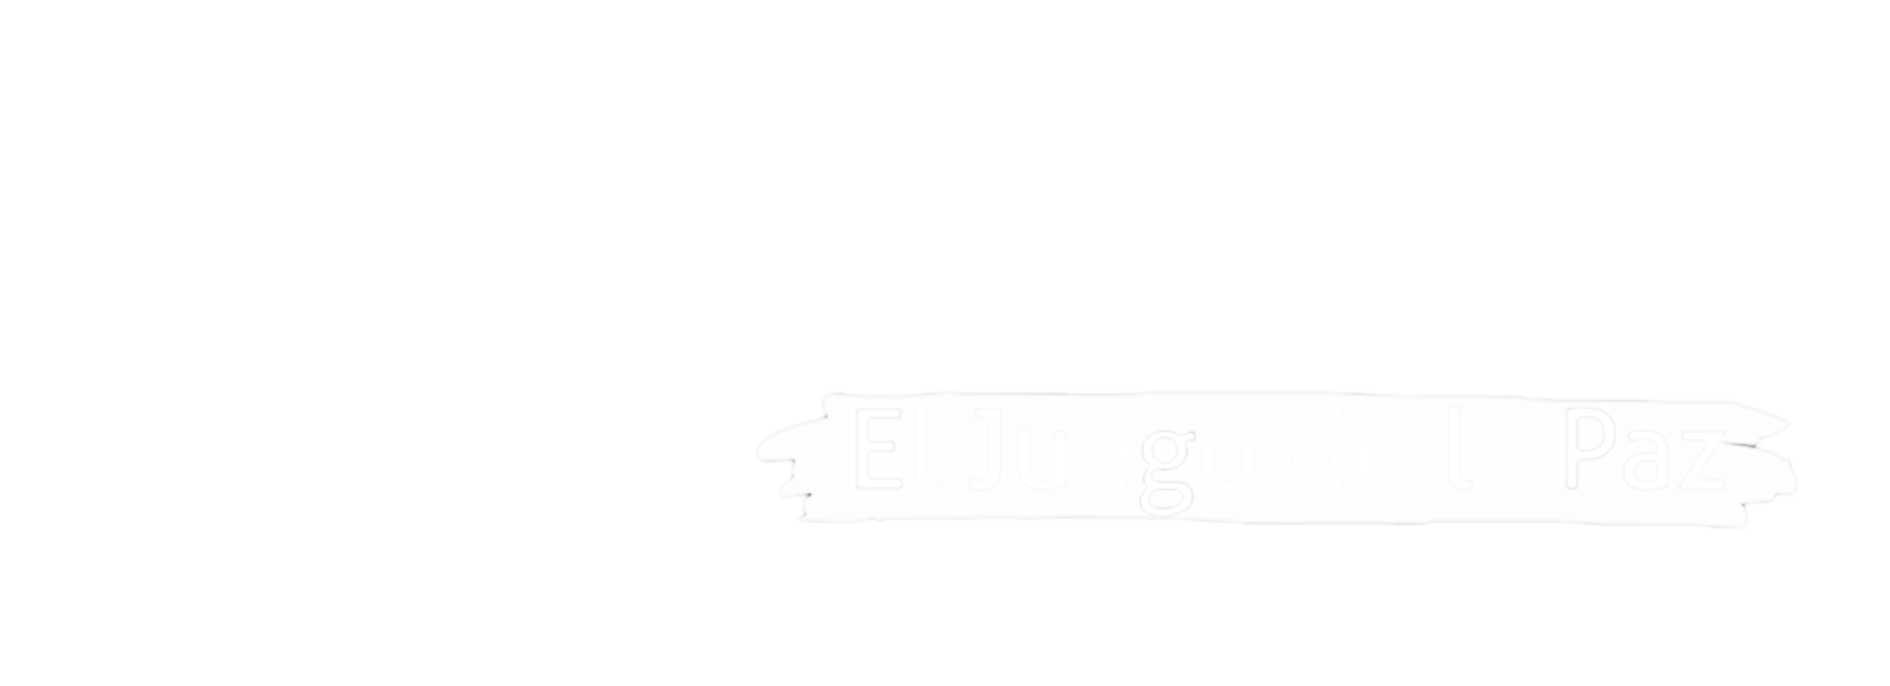 golombiao.png